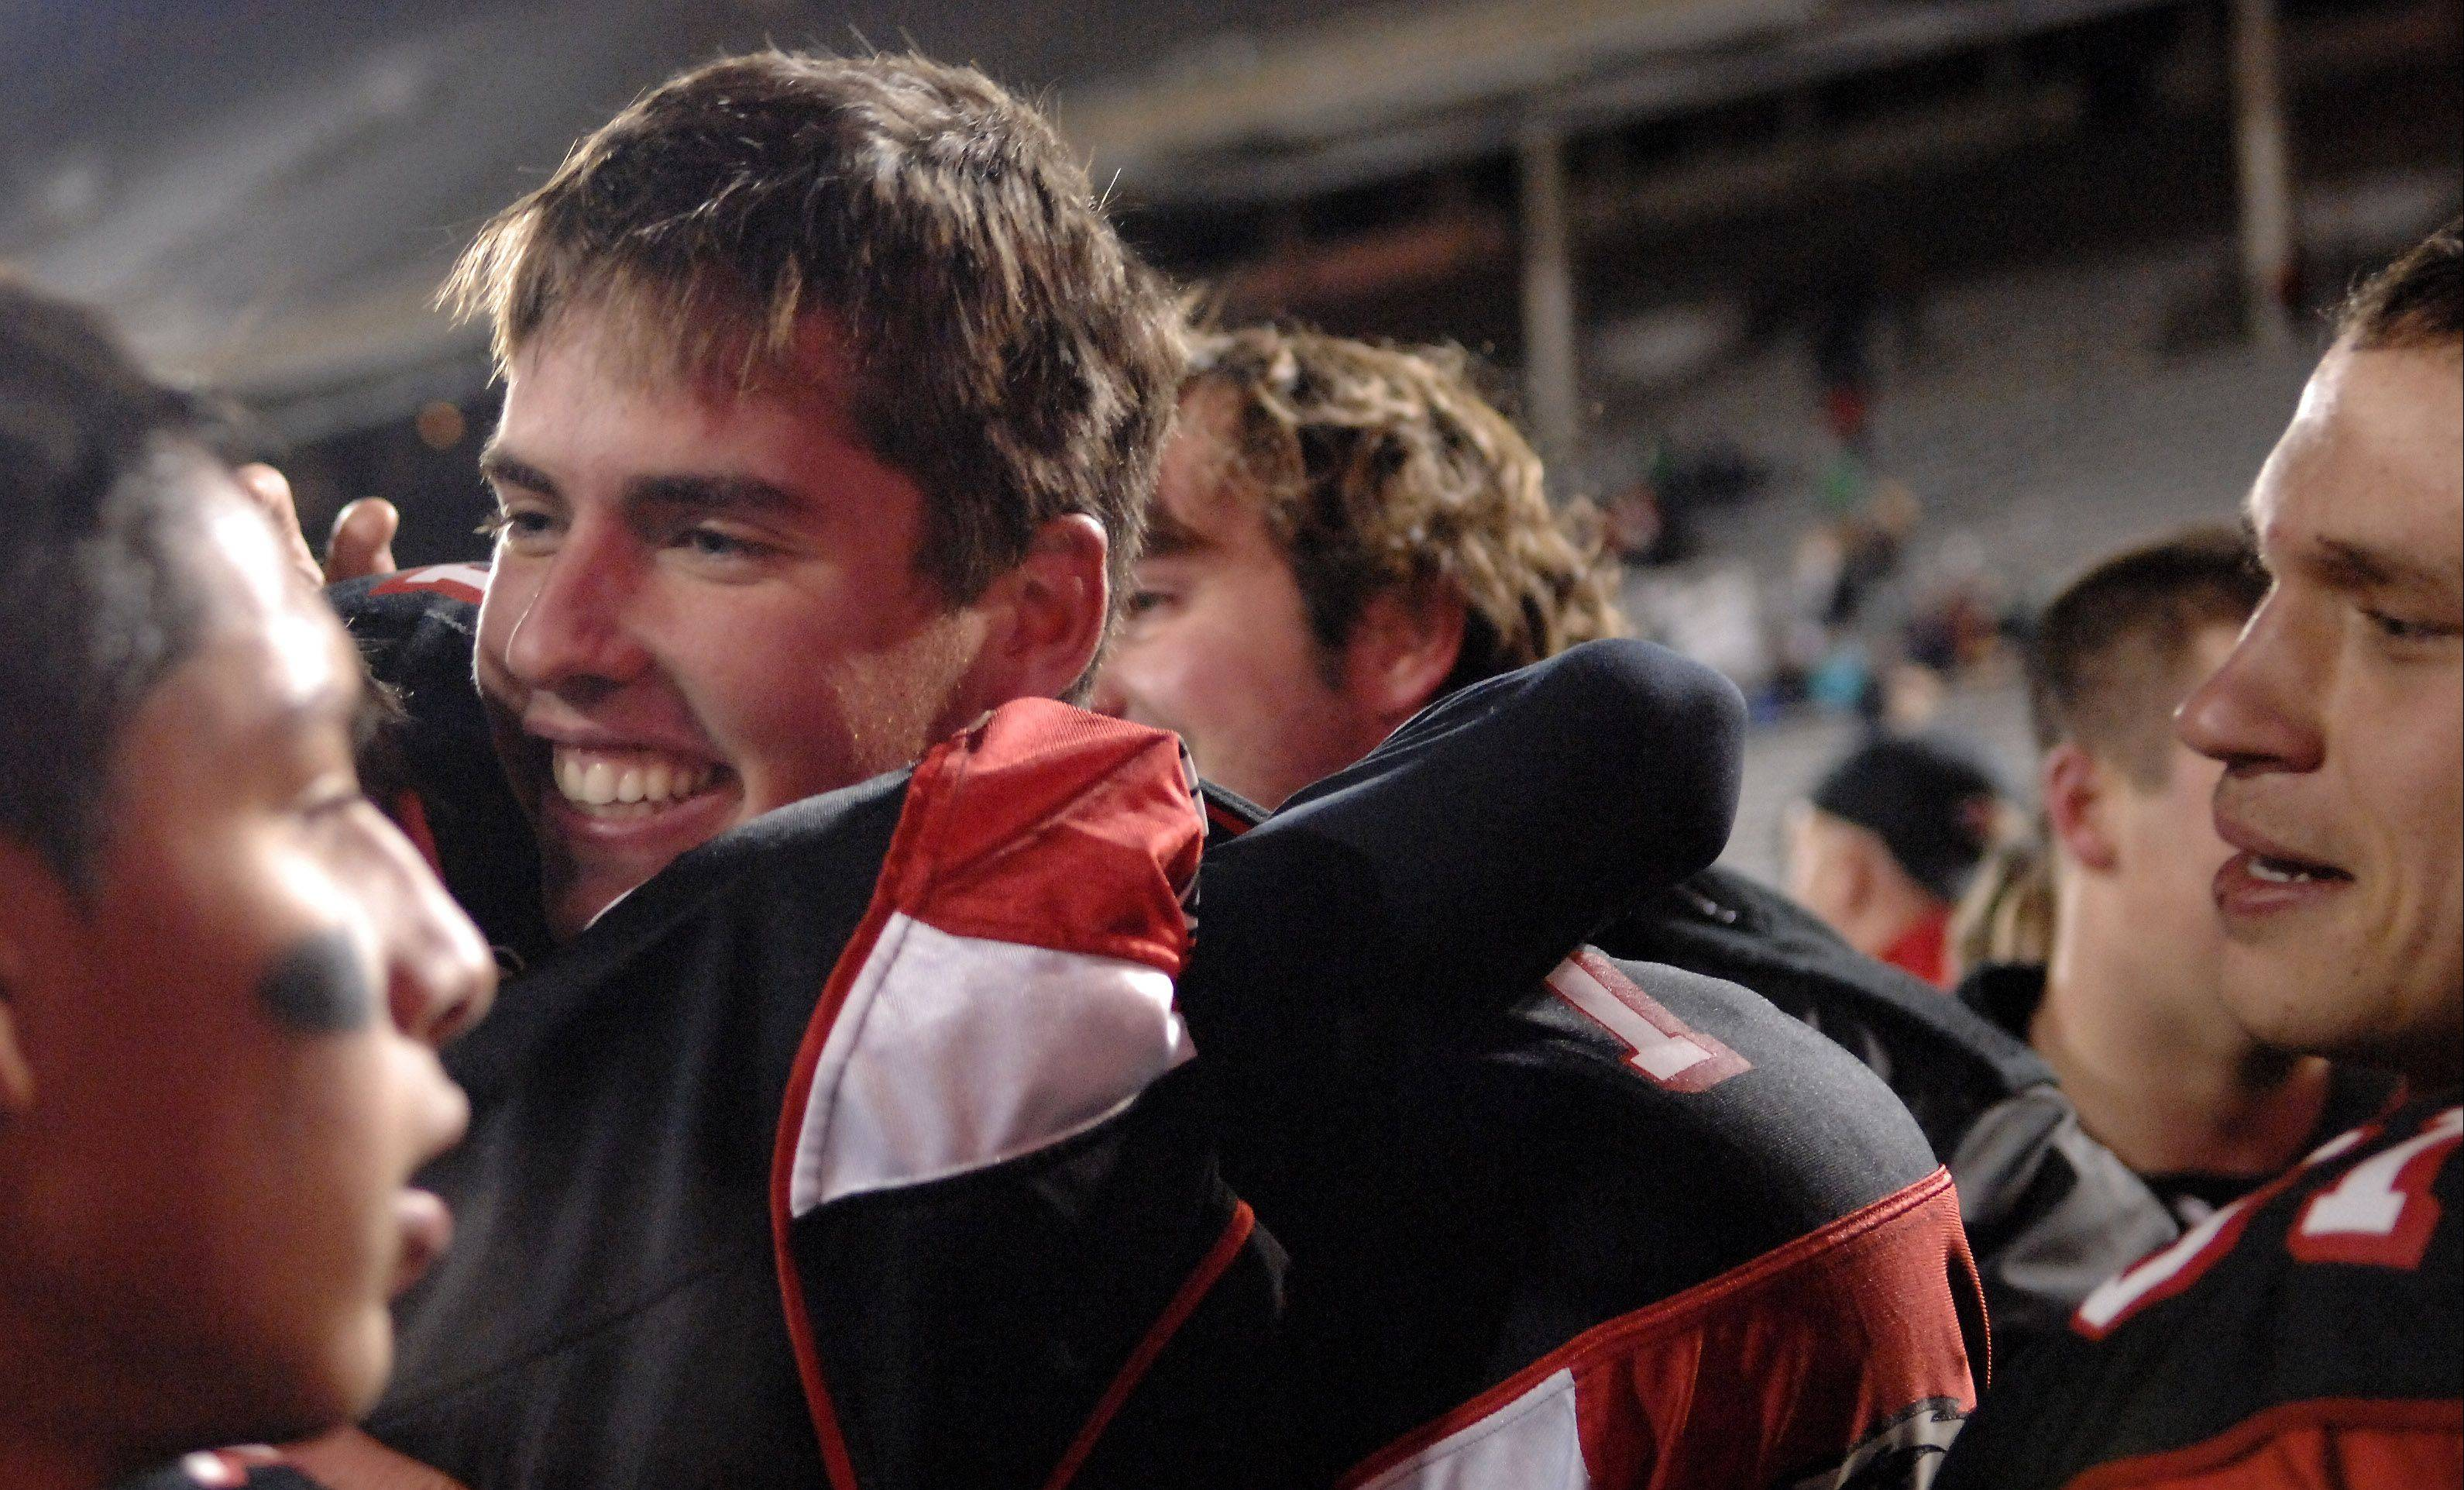 Aurora Christian quarterback Ryan McQuade hugs a teammate following their win over Tolono Unity Friday in Champaign.